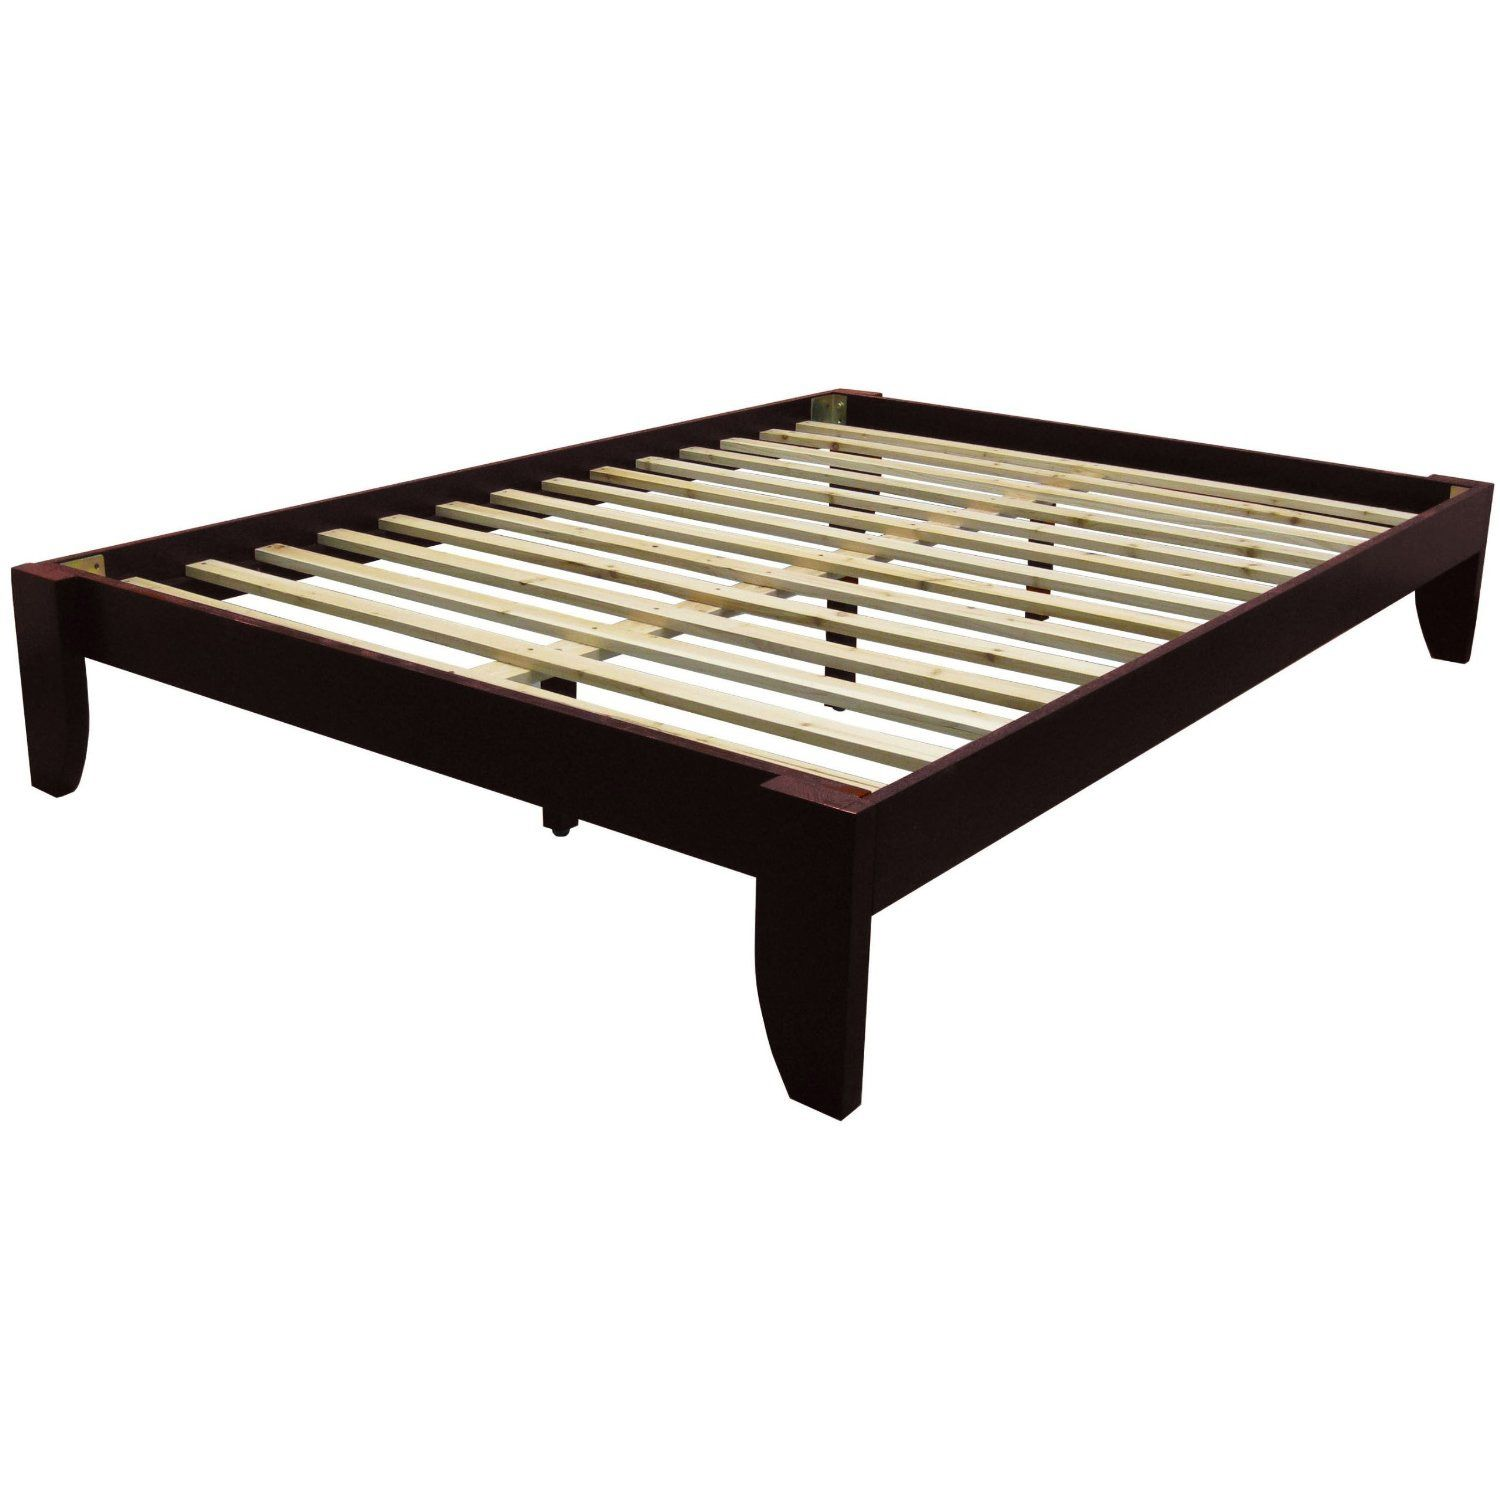 Queen size Platform Bed Frame in Mahogany Wood Finish 1